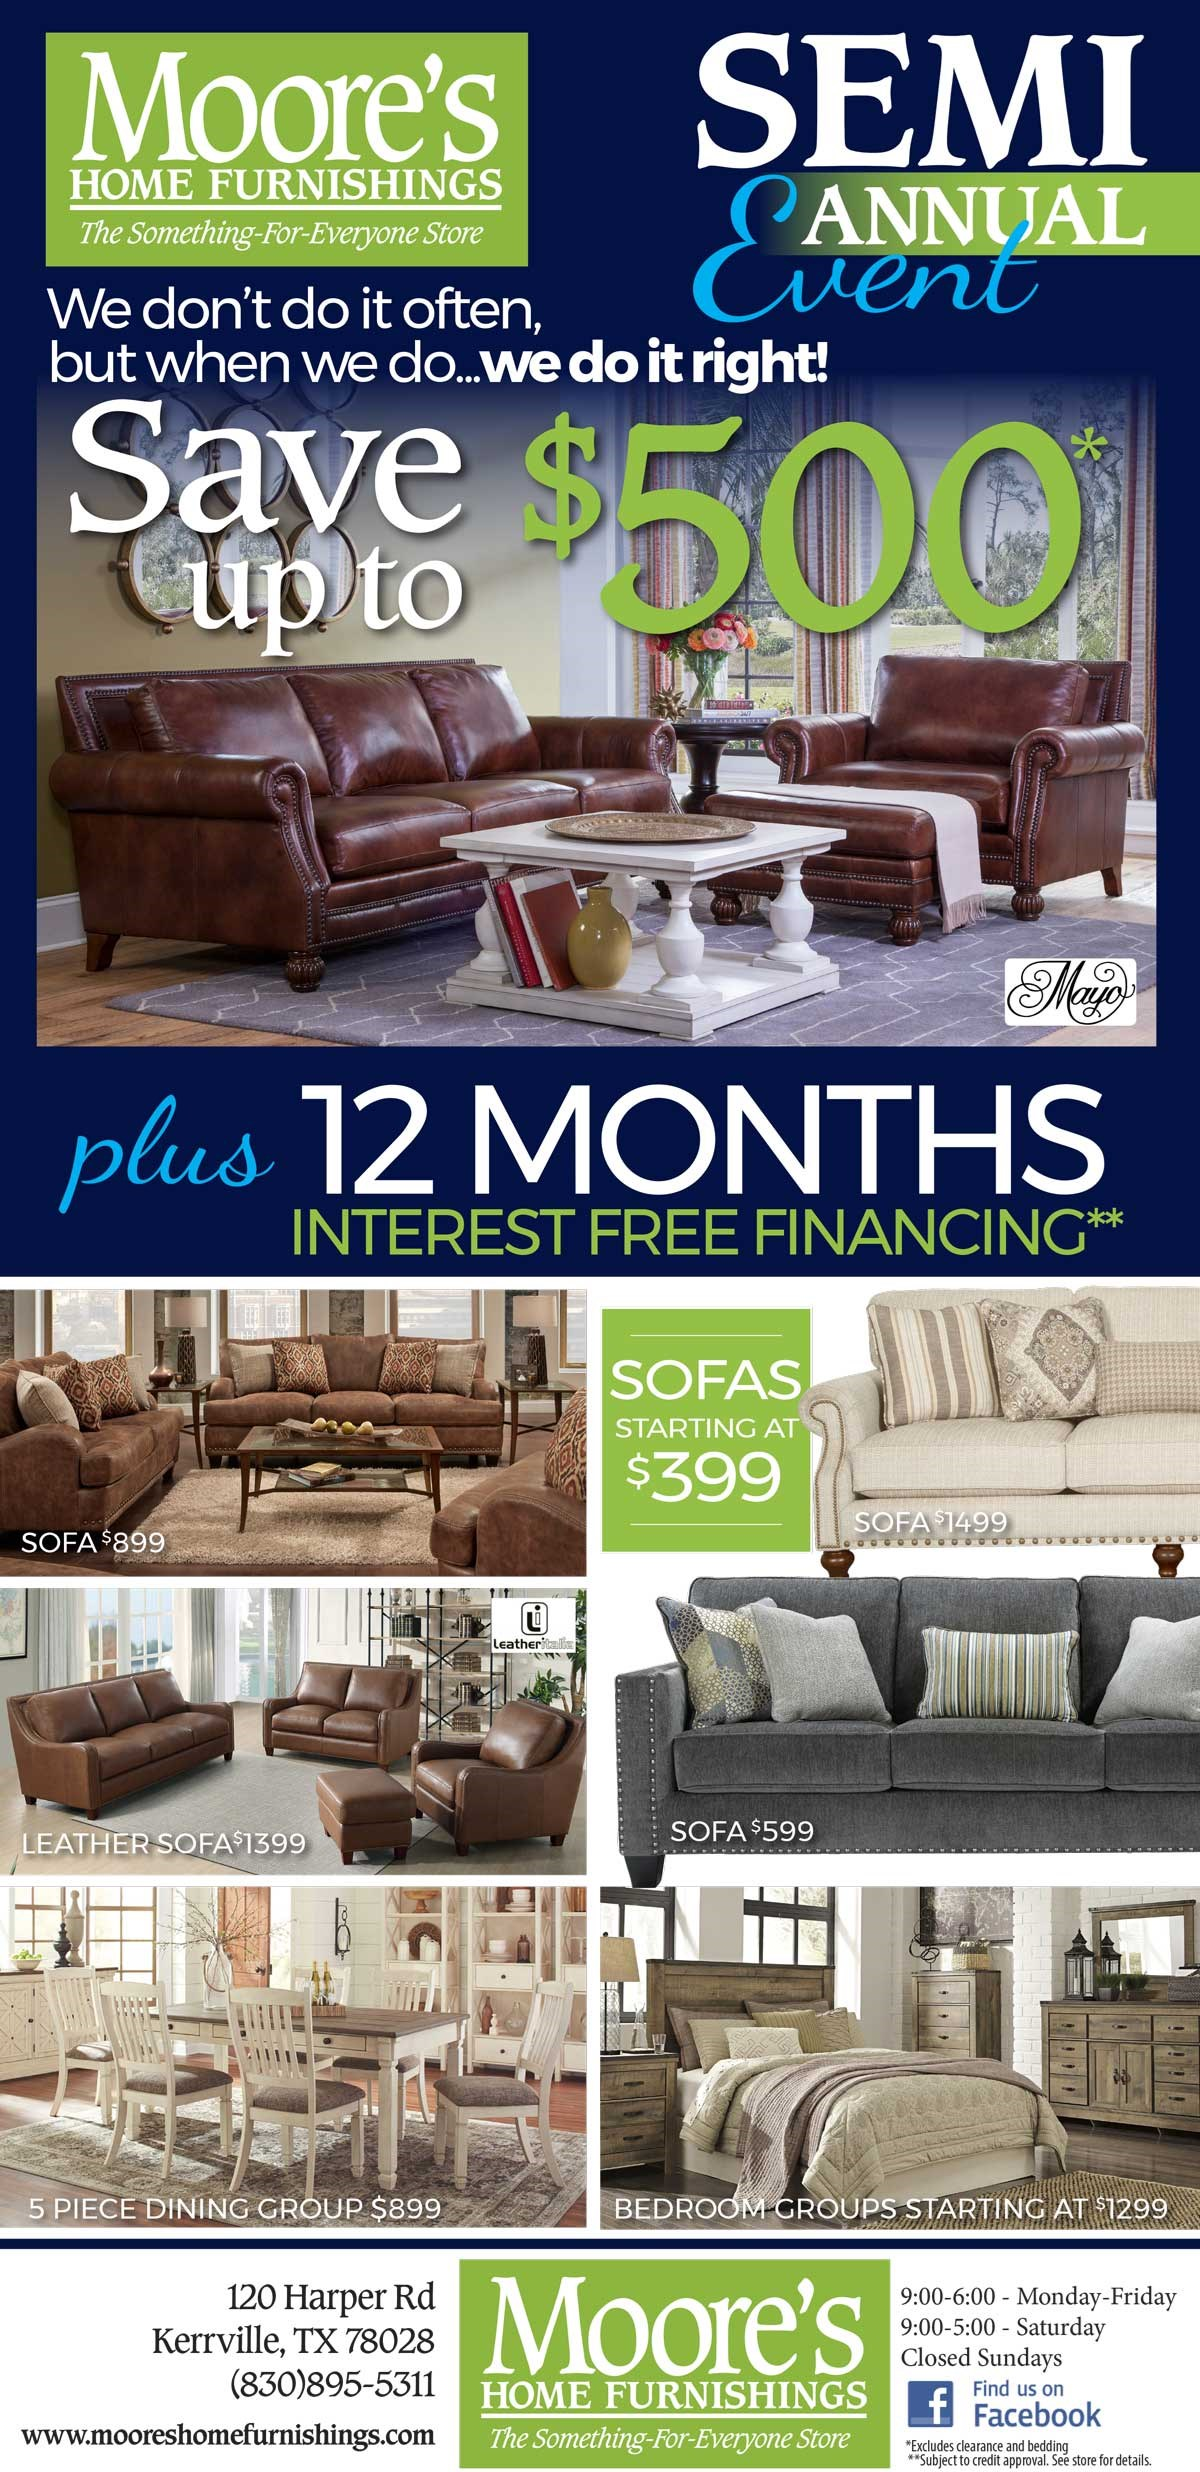 Save up to $500 plus 12 months interest free financing.